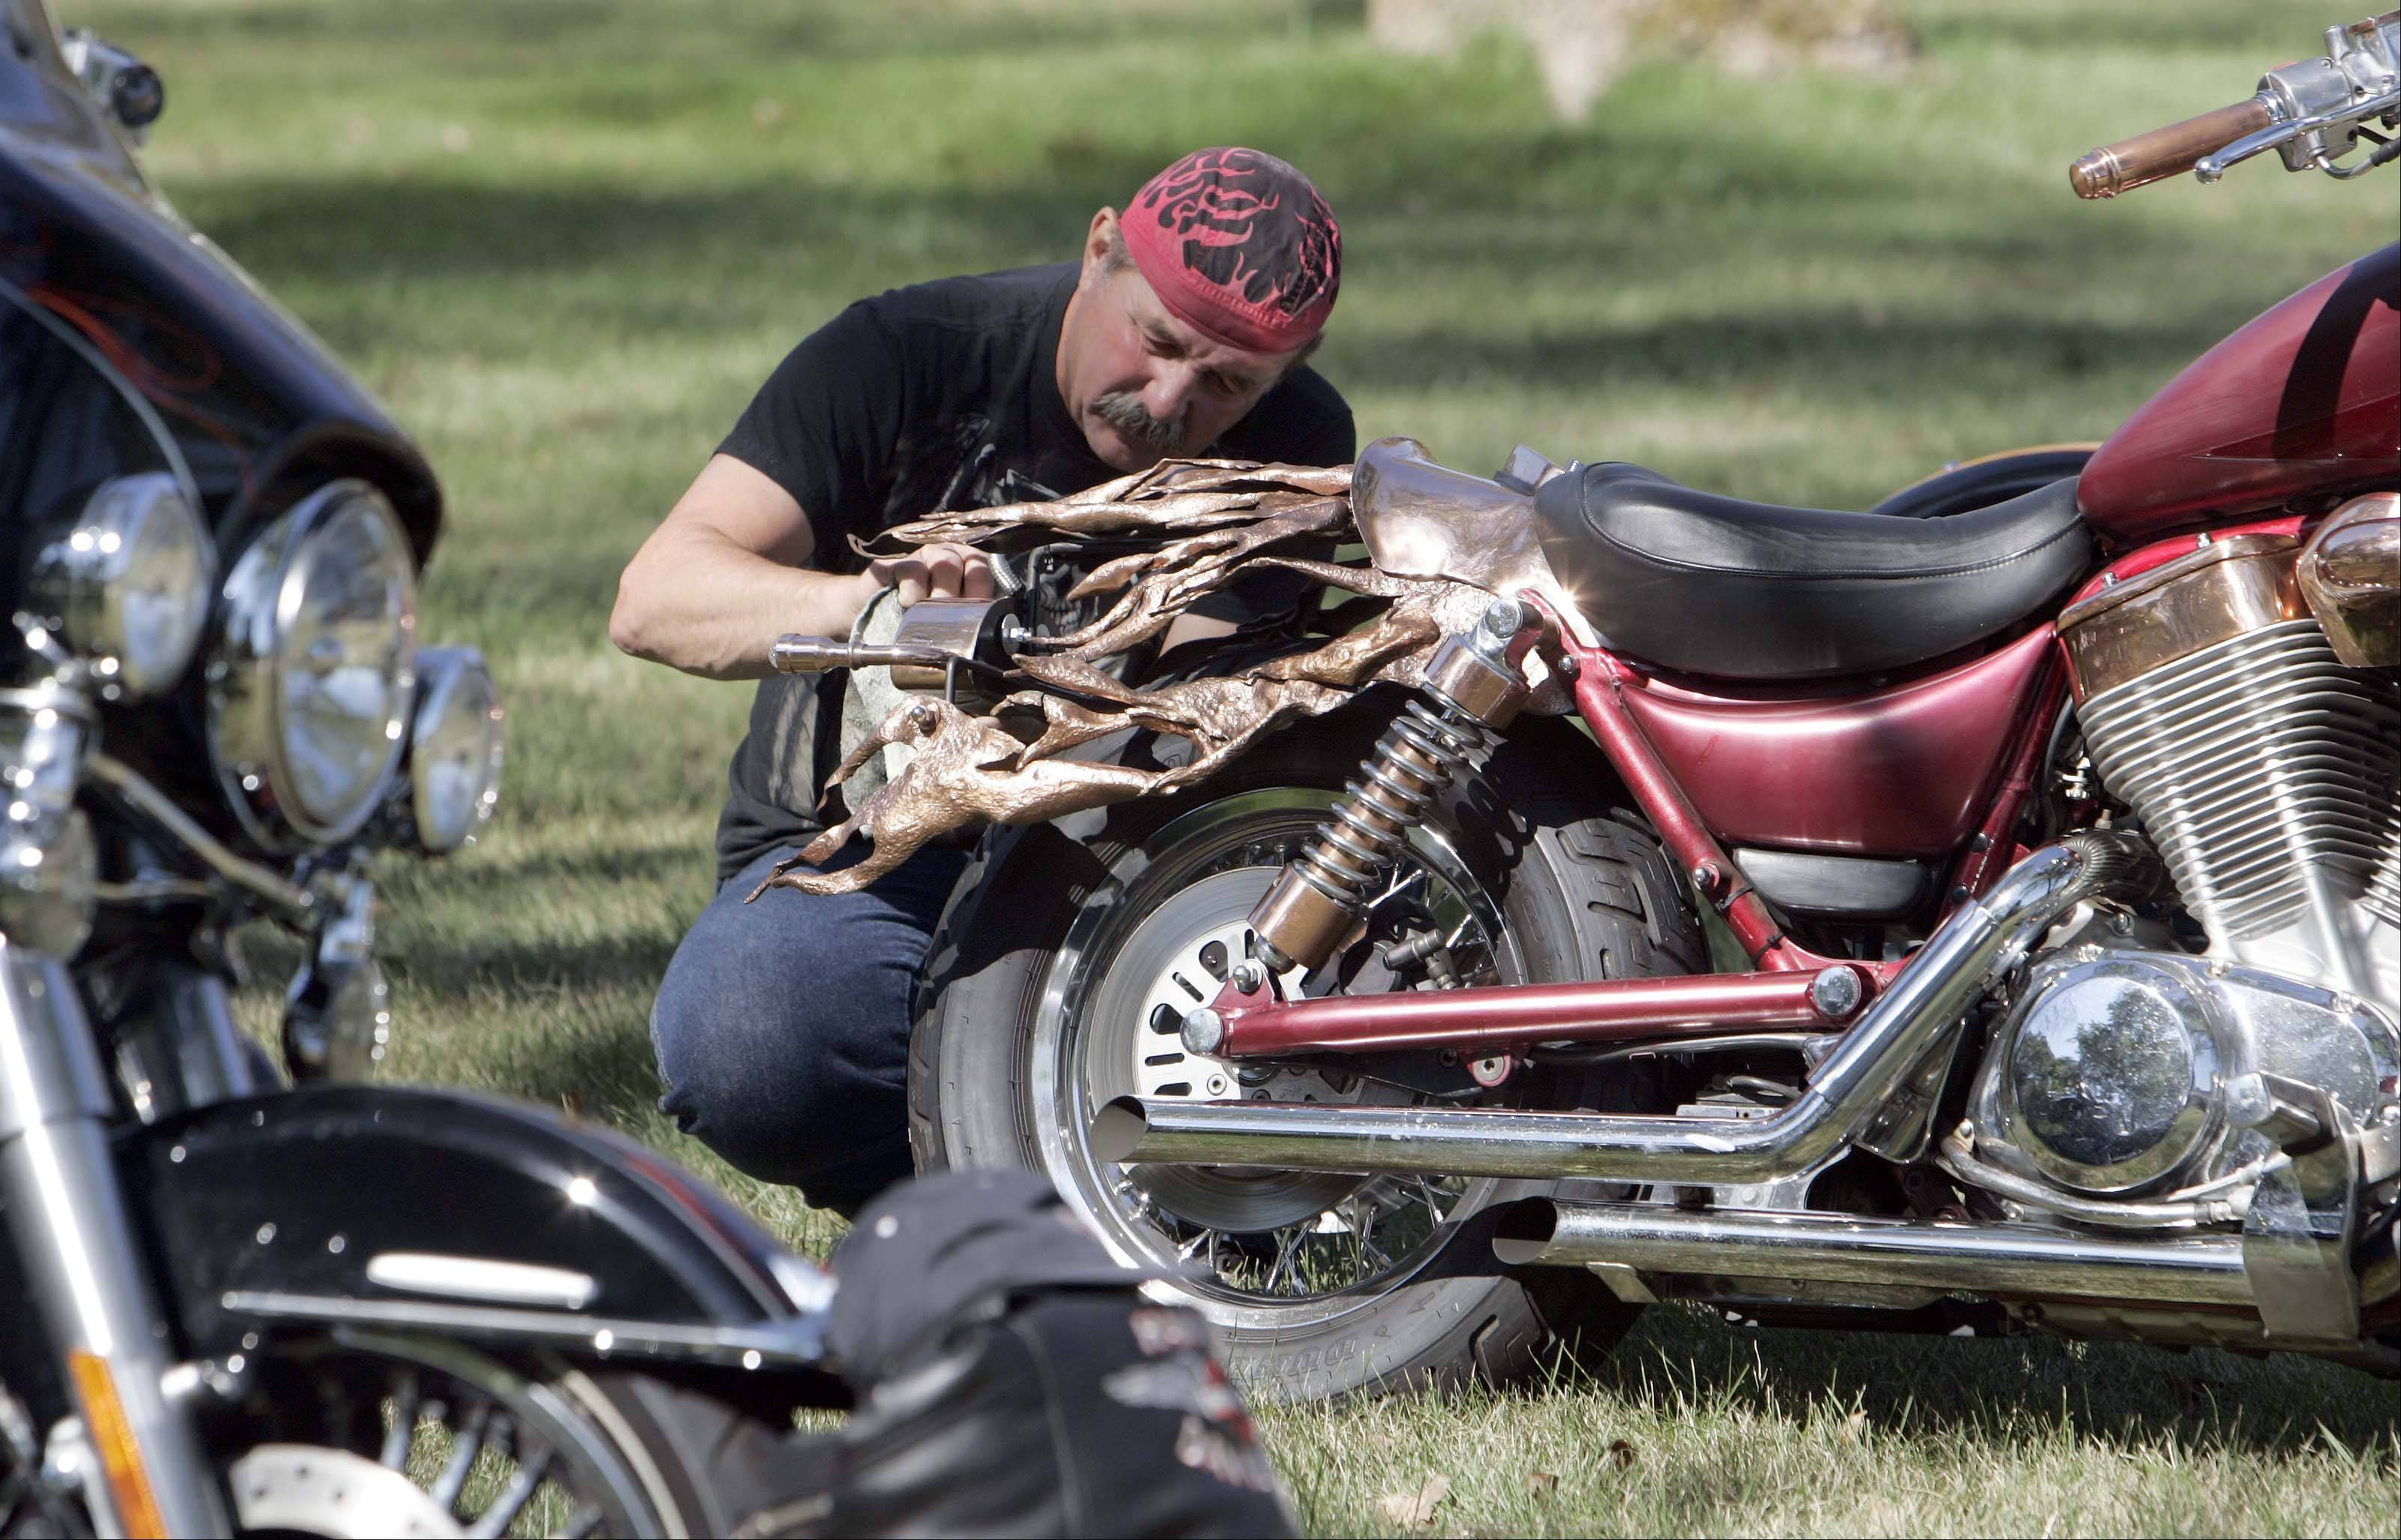 Mike Prete of Harvard cleans up his 1998 Suzuki Intruder at the car, truck and bike show during North Aurora Days Sunday at Mooseheart. Prete, a plumber by trade, hand crafted the copper flames on the bike from discarded copper pipe.